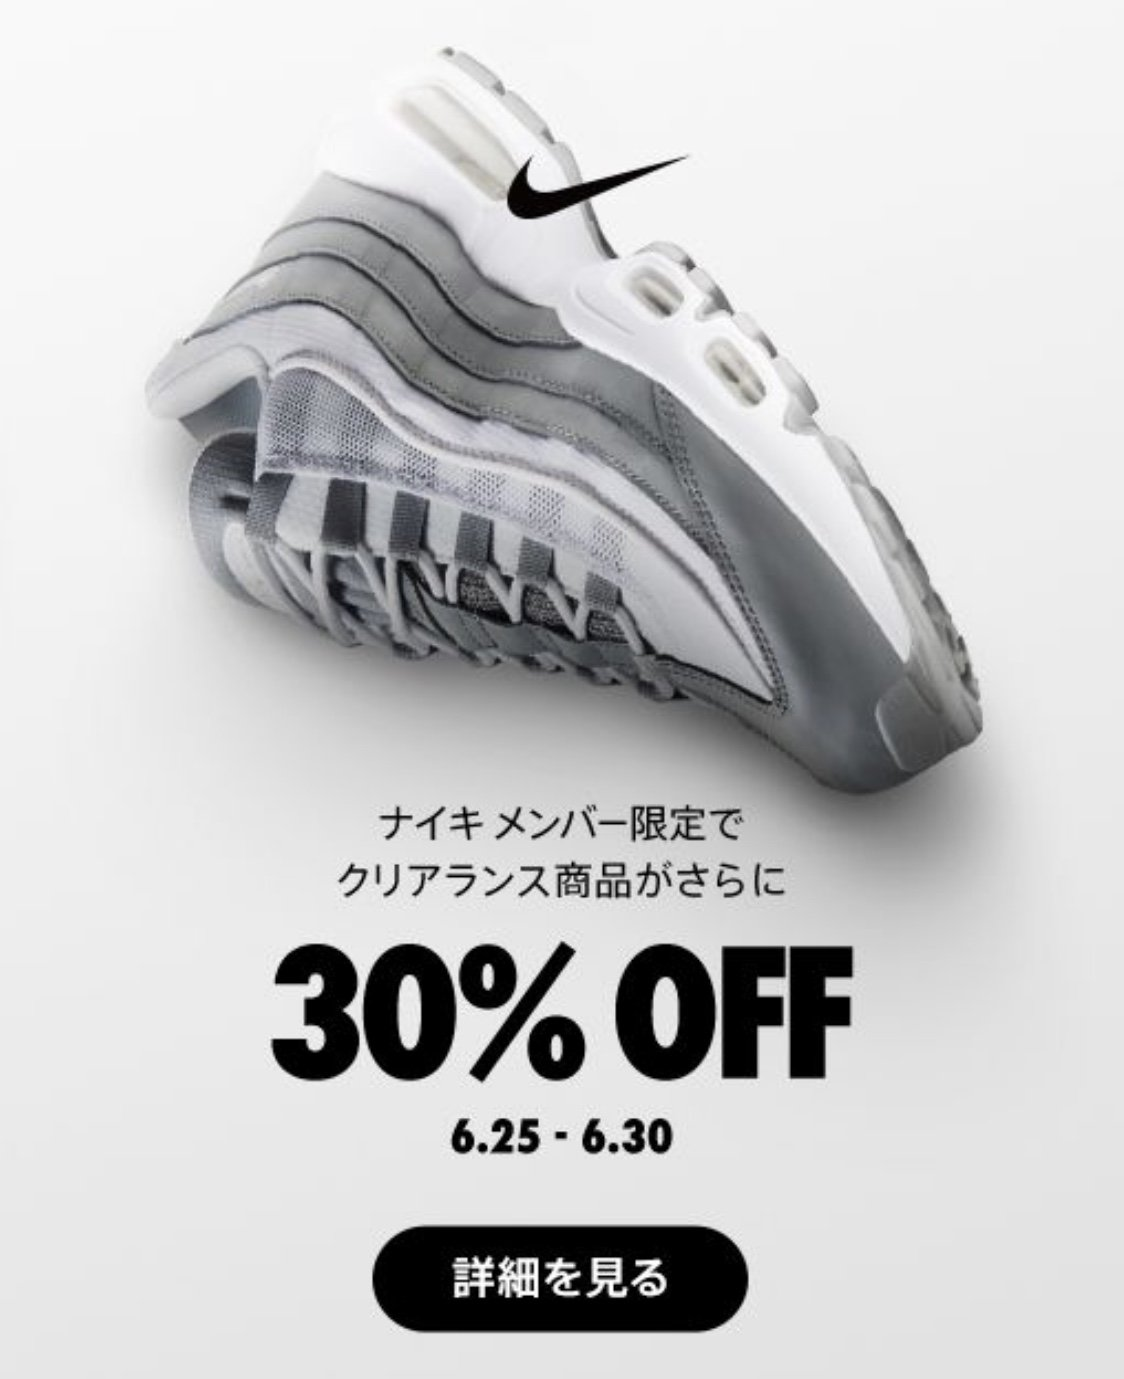 nike-online-store-sale-30-percent-off-start-20200625